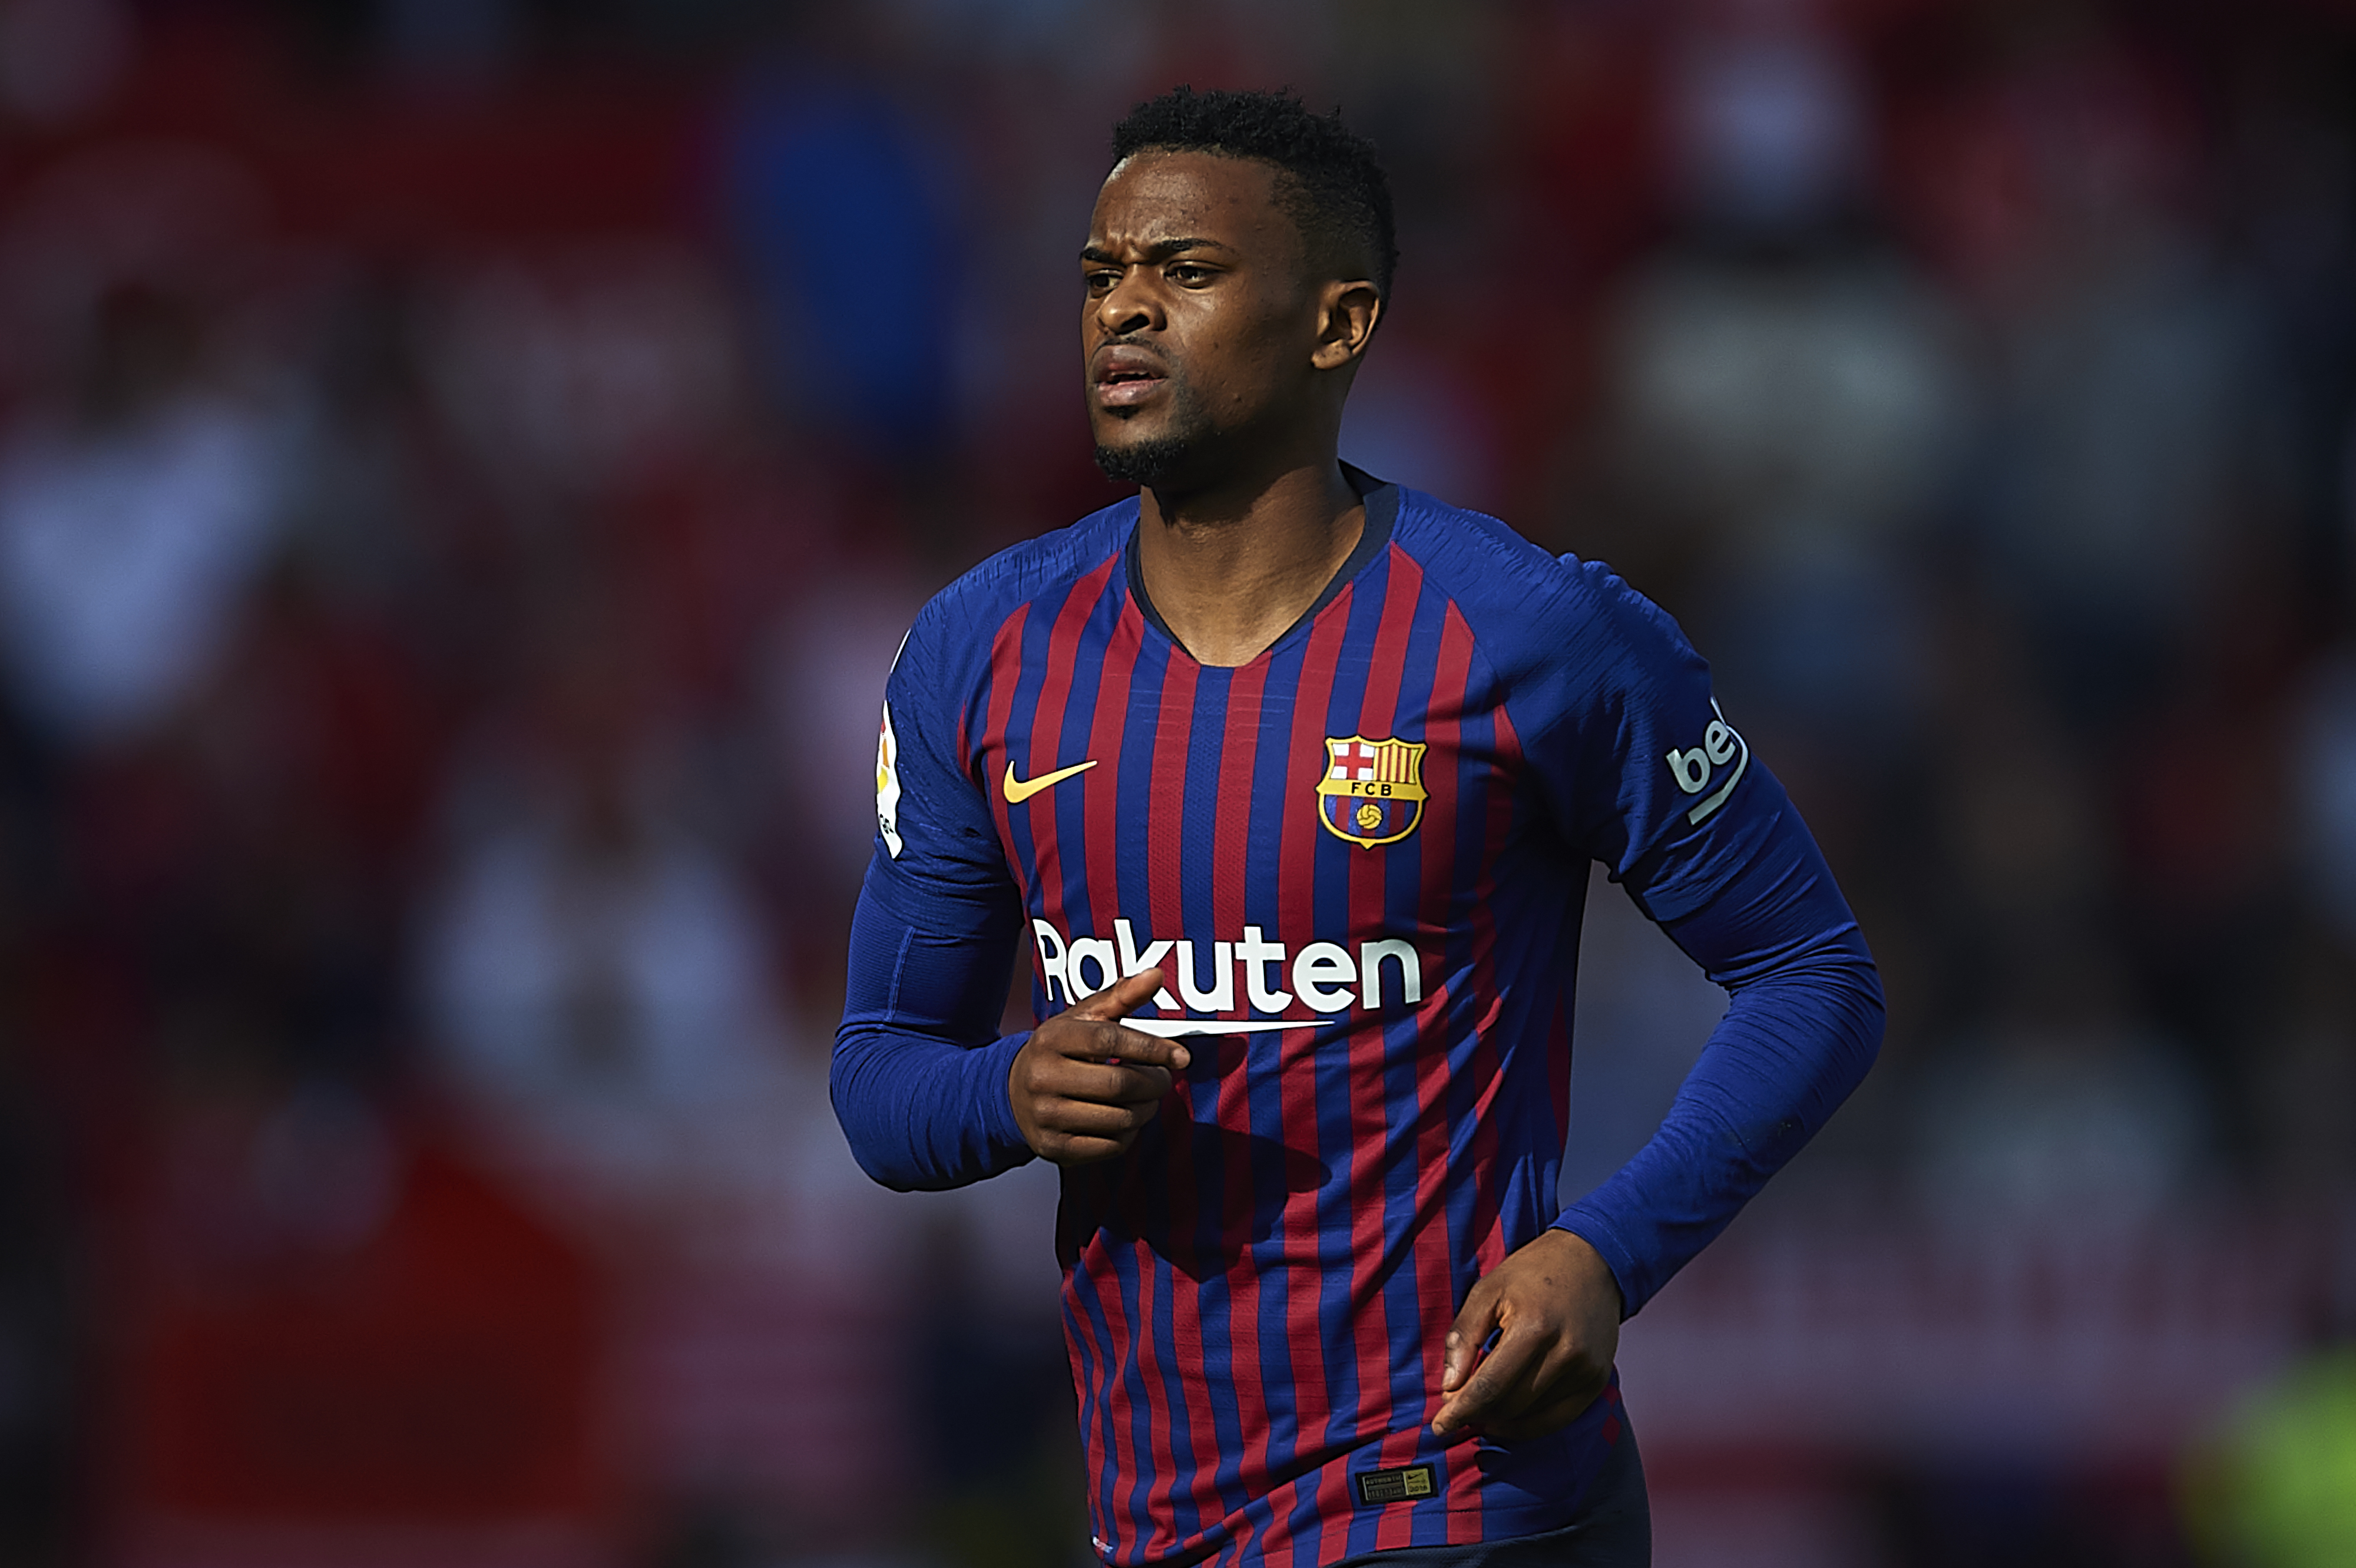 Manchester City are not interested in landing Nelson Semedo who is seen in the photo